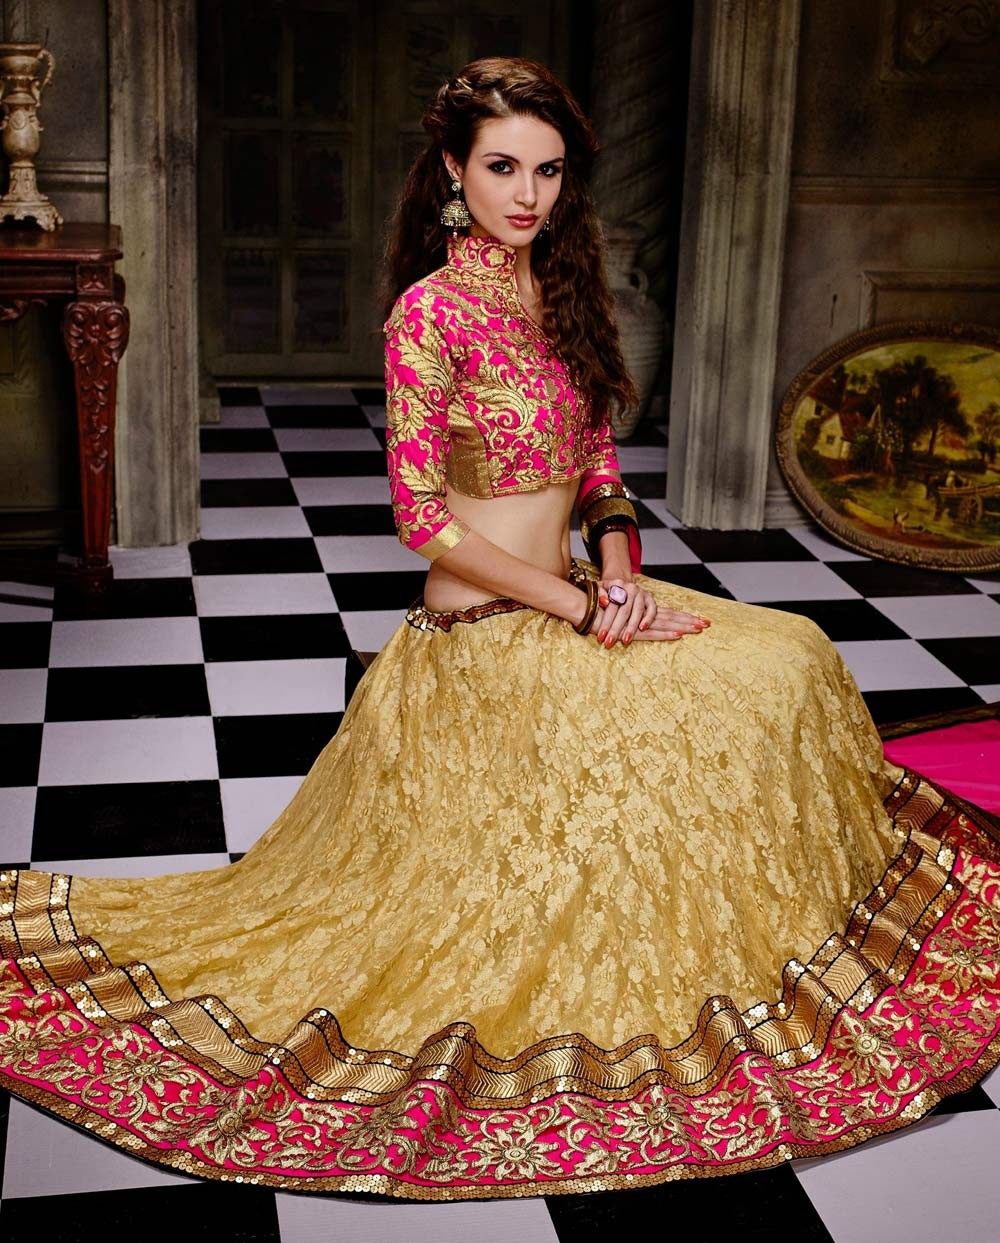 2d39cdd820 Indian women ethnic attire has successfully brought India at a leading  position in world women fashion due to their outstanding quality of fabric.